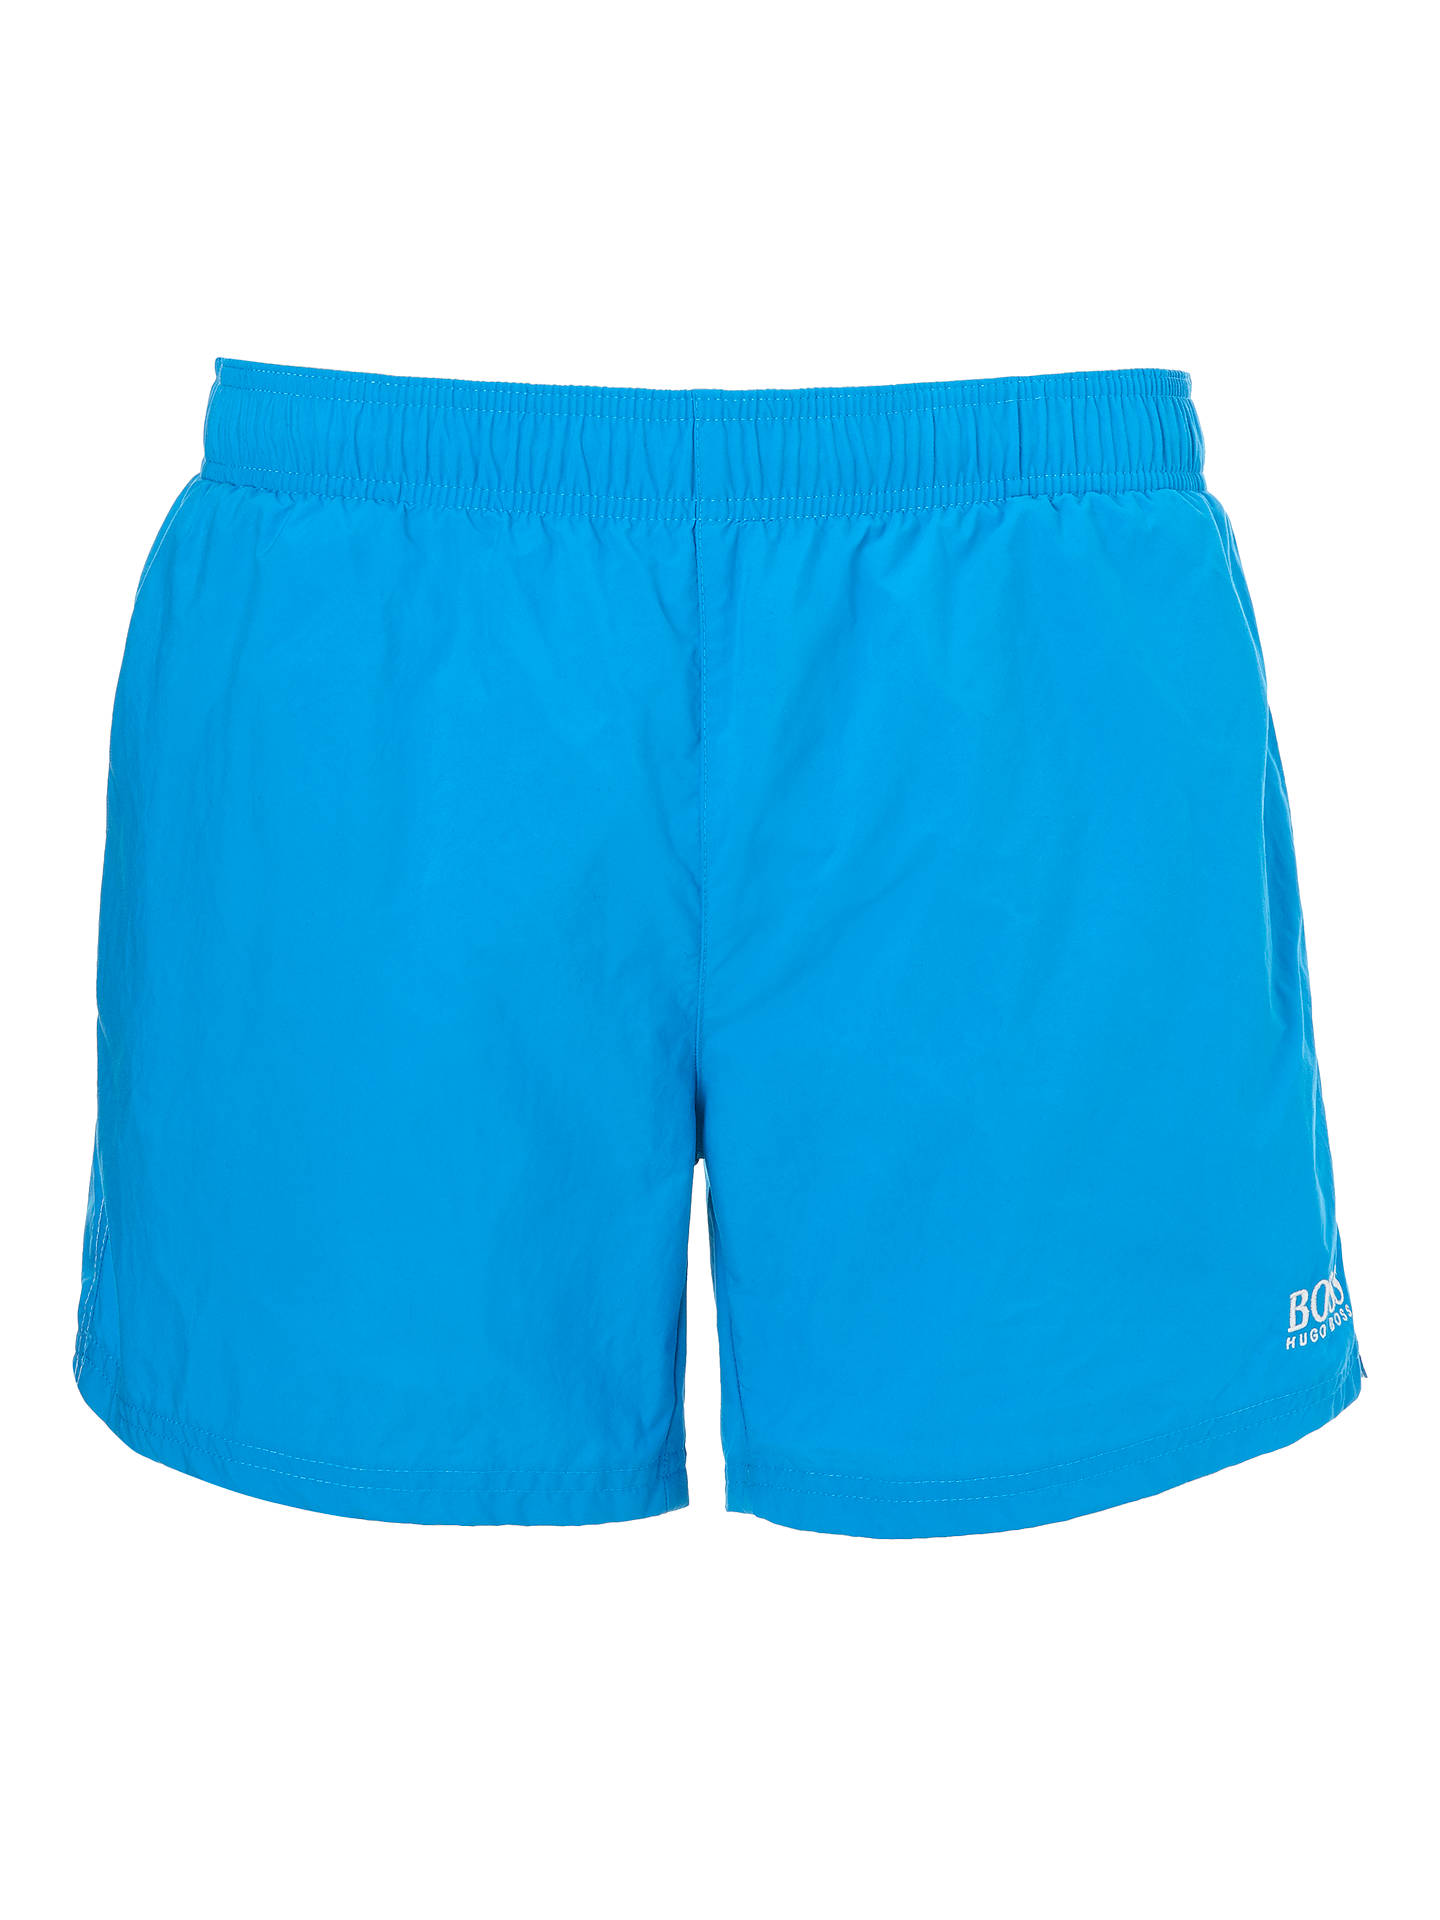 b8f8fe994 Buy BOSS Perch Swim Shorts, Blue, L Online at johnlewis.com ...